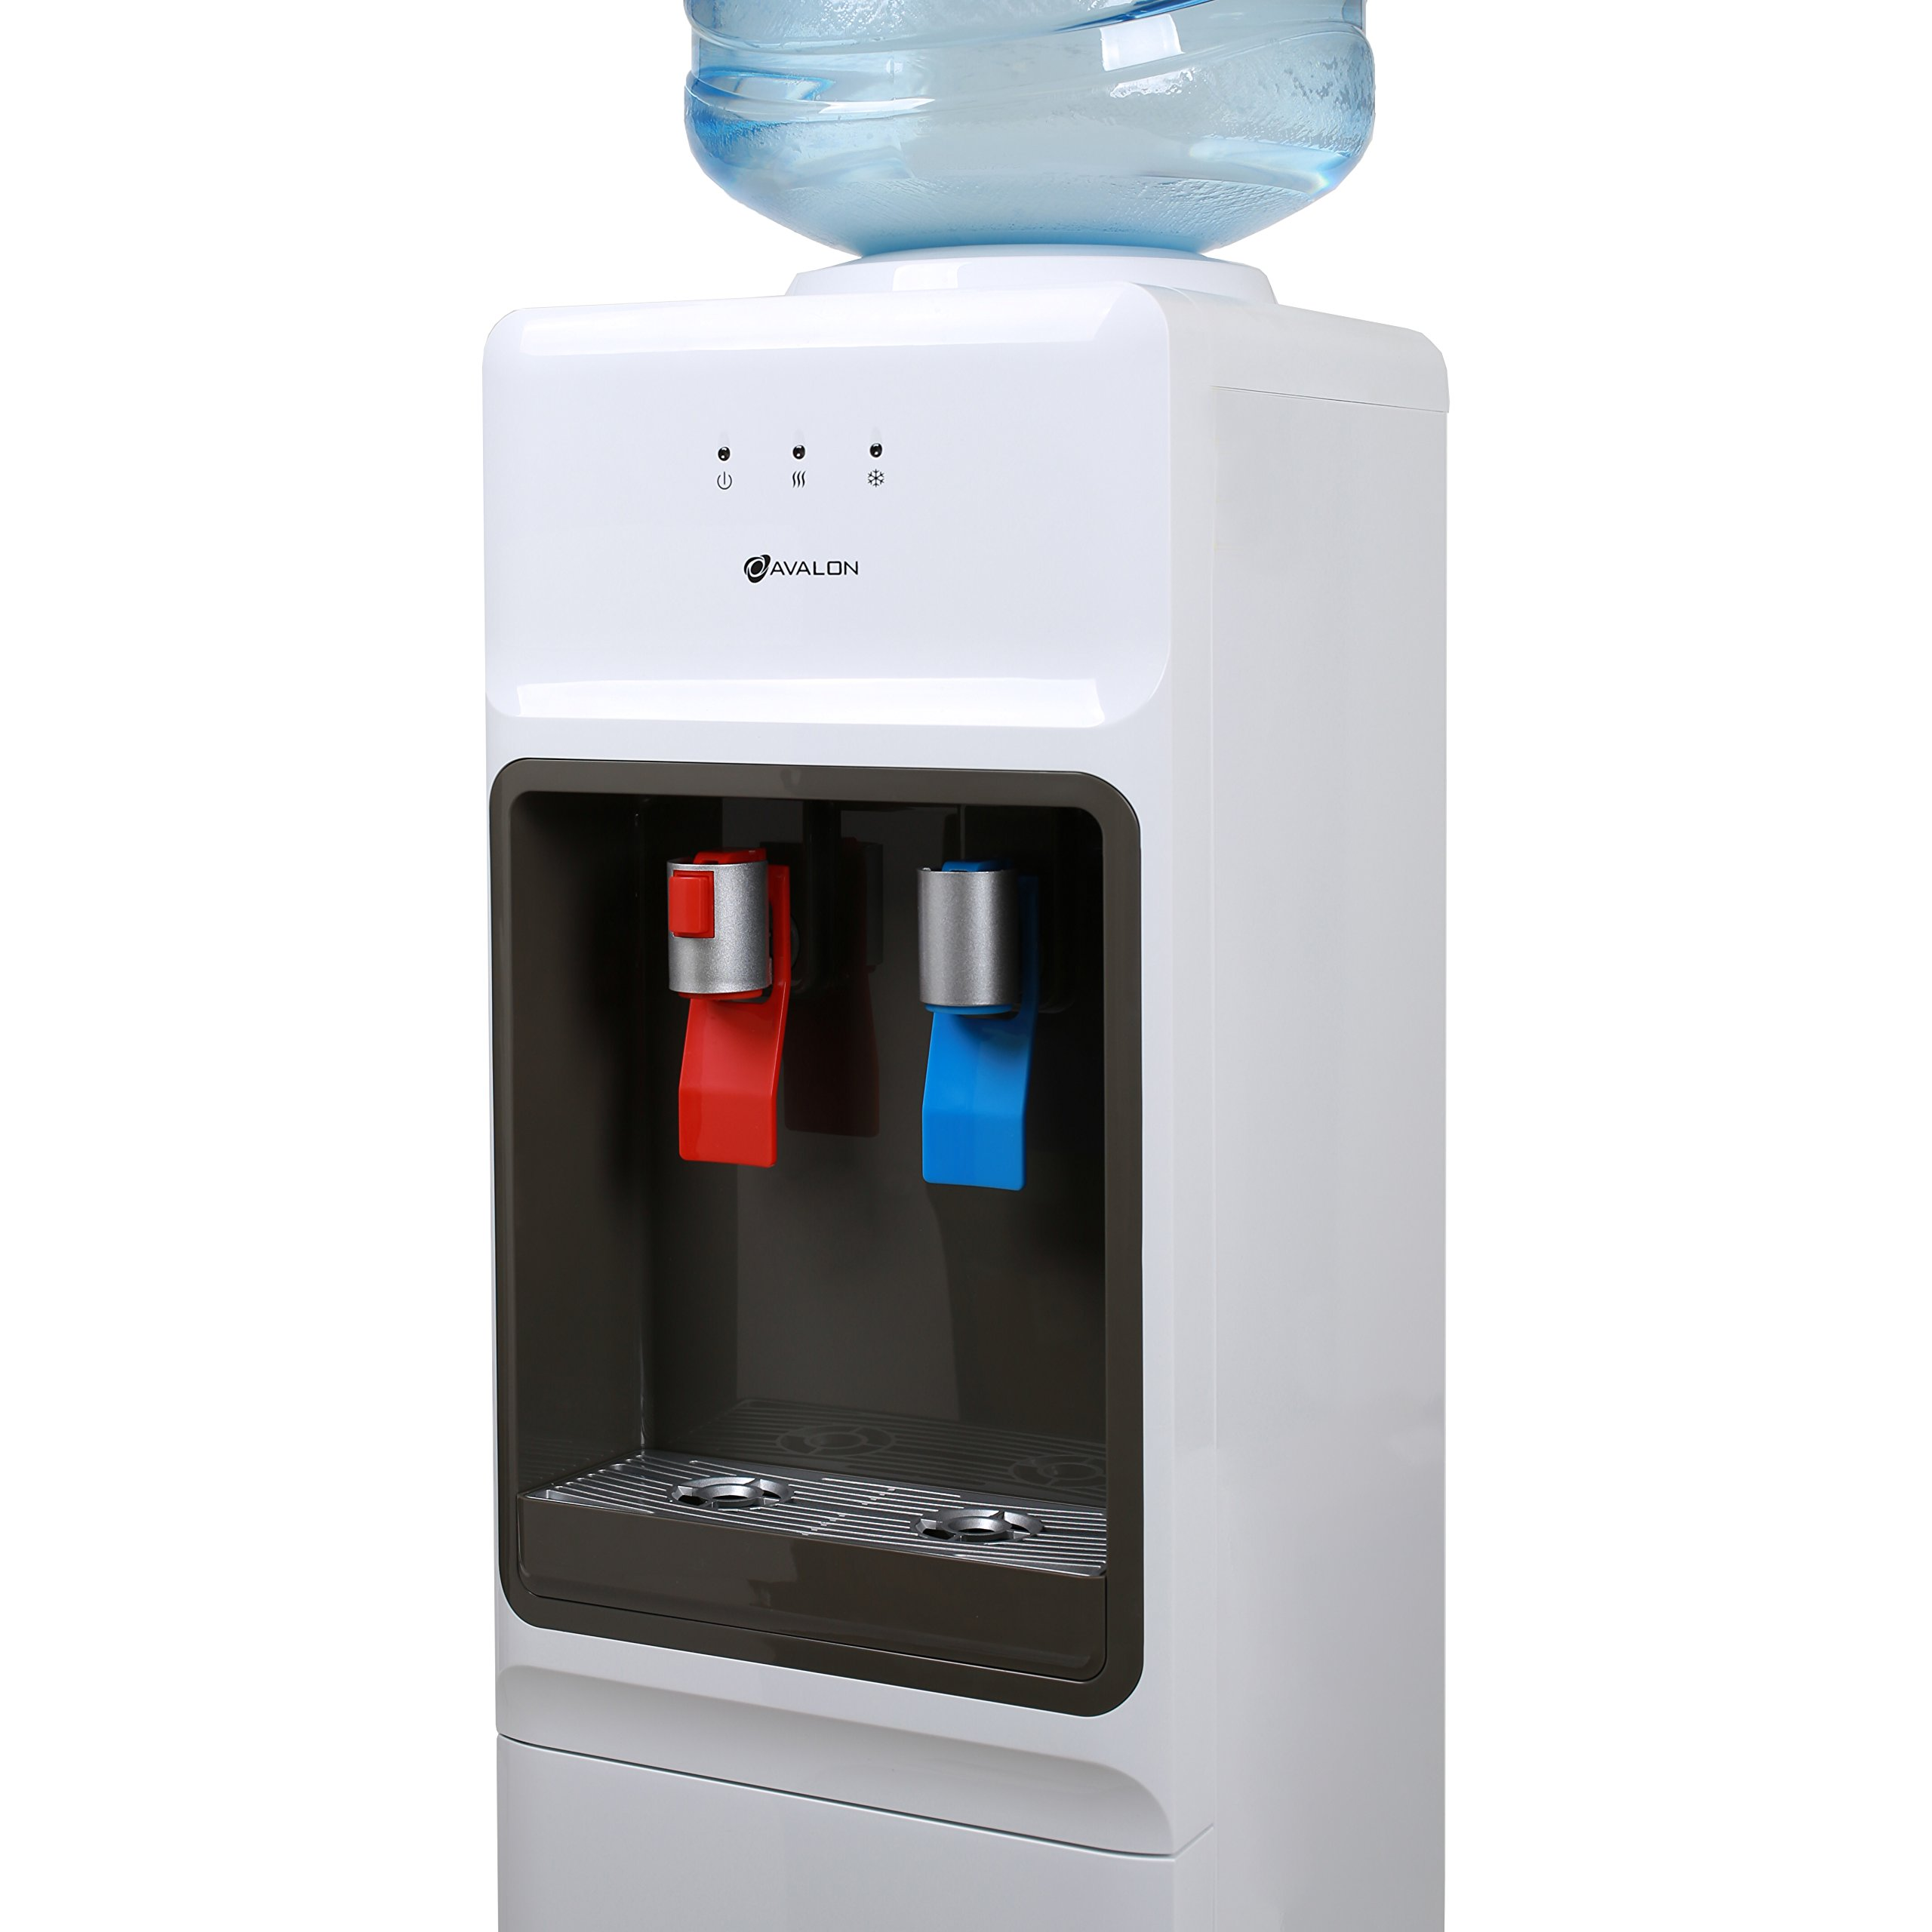 Avalon Top Loading Water Cooler Dispenser - Hot & Cold Water, Child Safety Lock, Innovative Slim Design, Holds 3 or 5 Gallon Bottles - UL/Energy Star Approved by Avalon (Image #3)